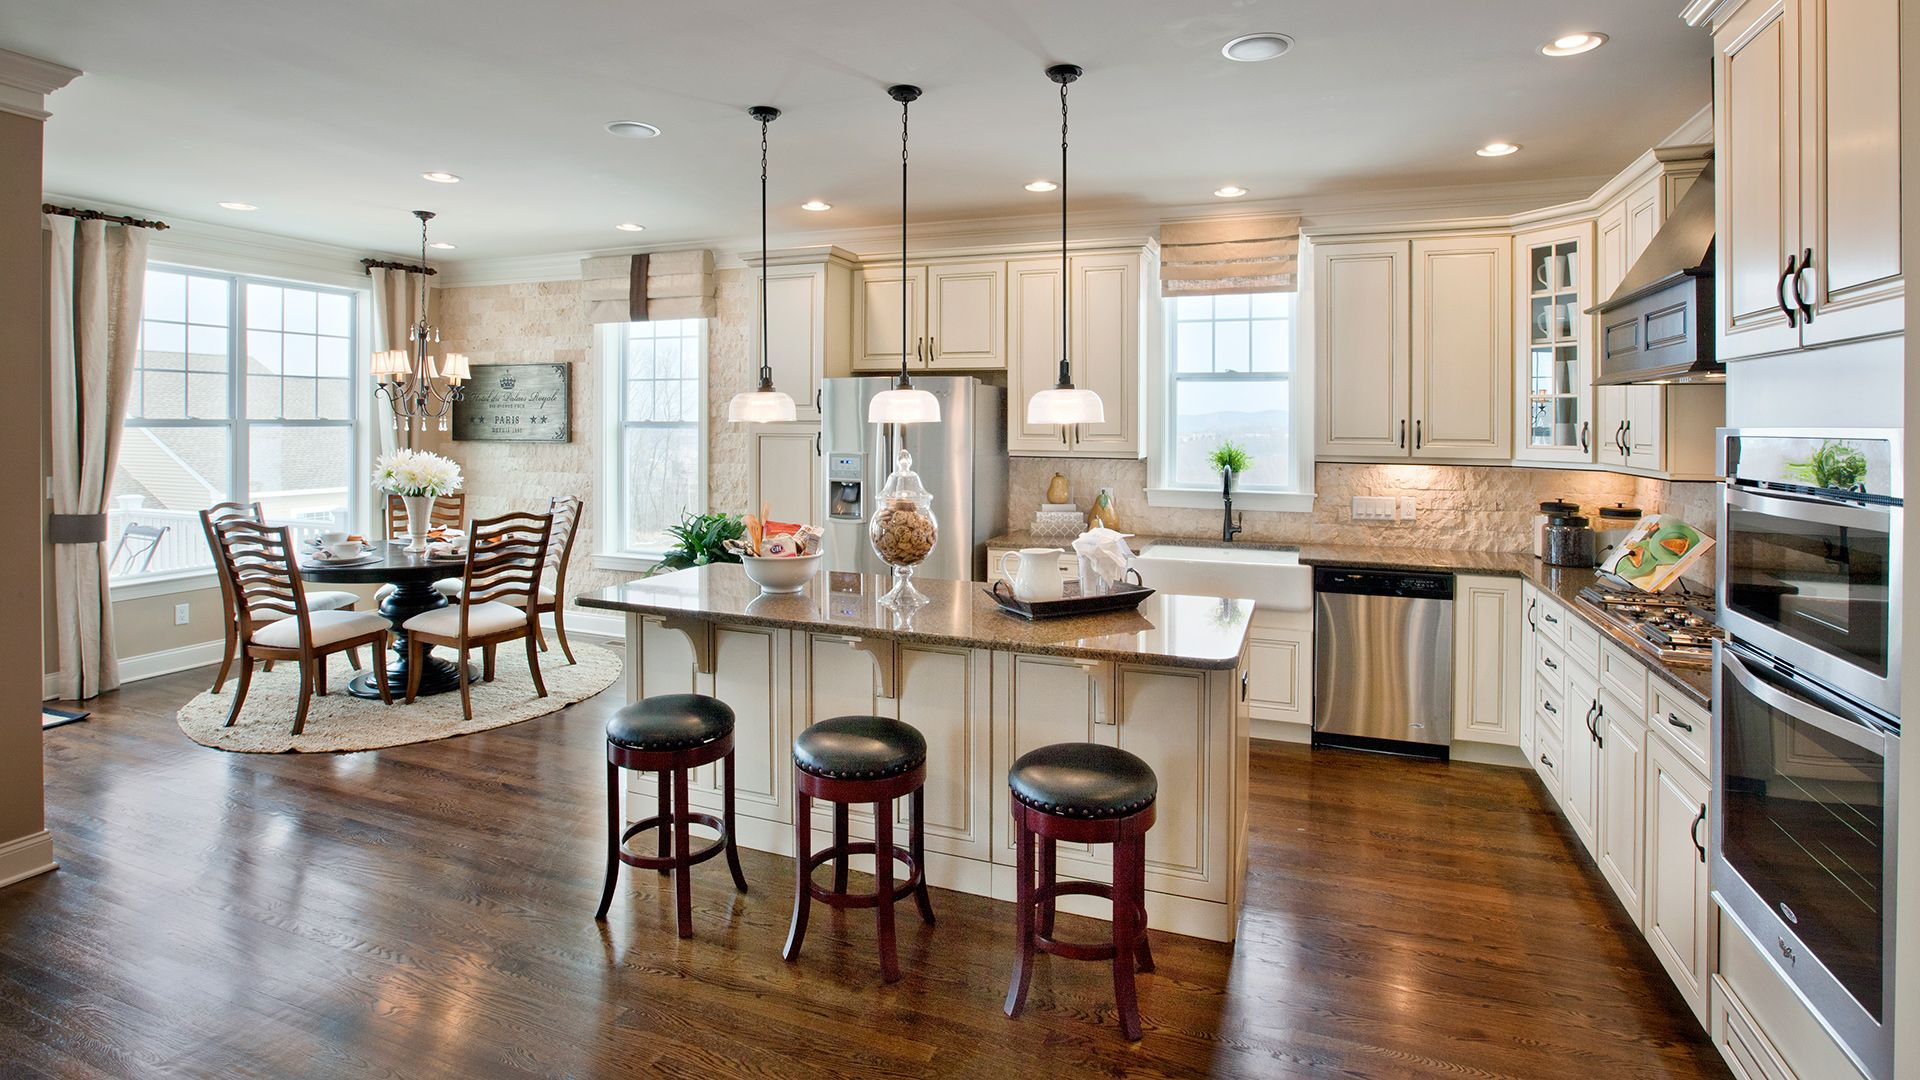 Kitchen Design Studios Toll Brothers  Denton  Rivingtontoll Brothers  The Ridge